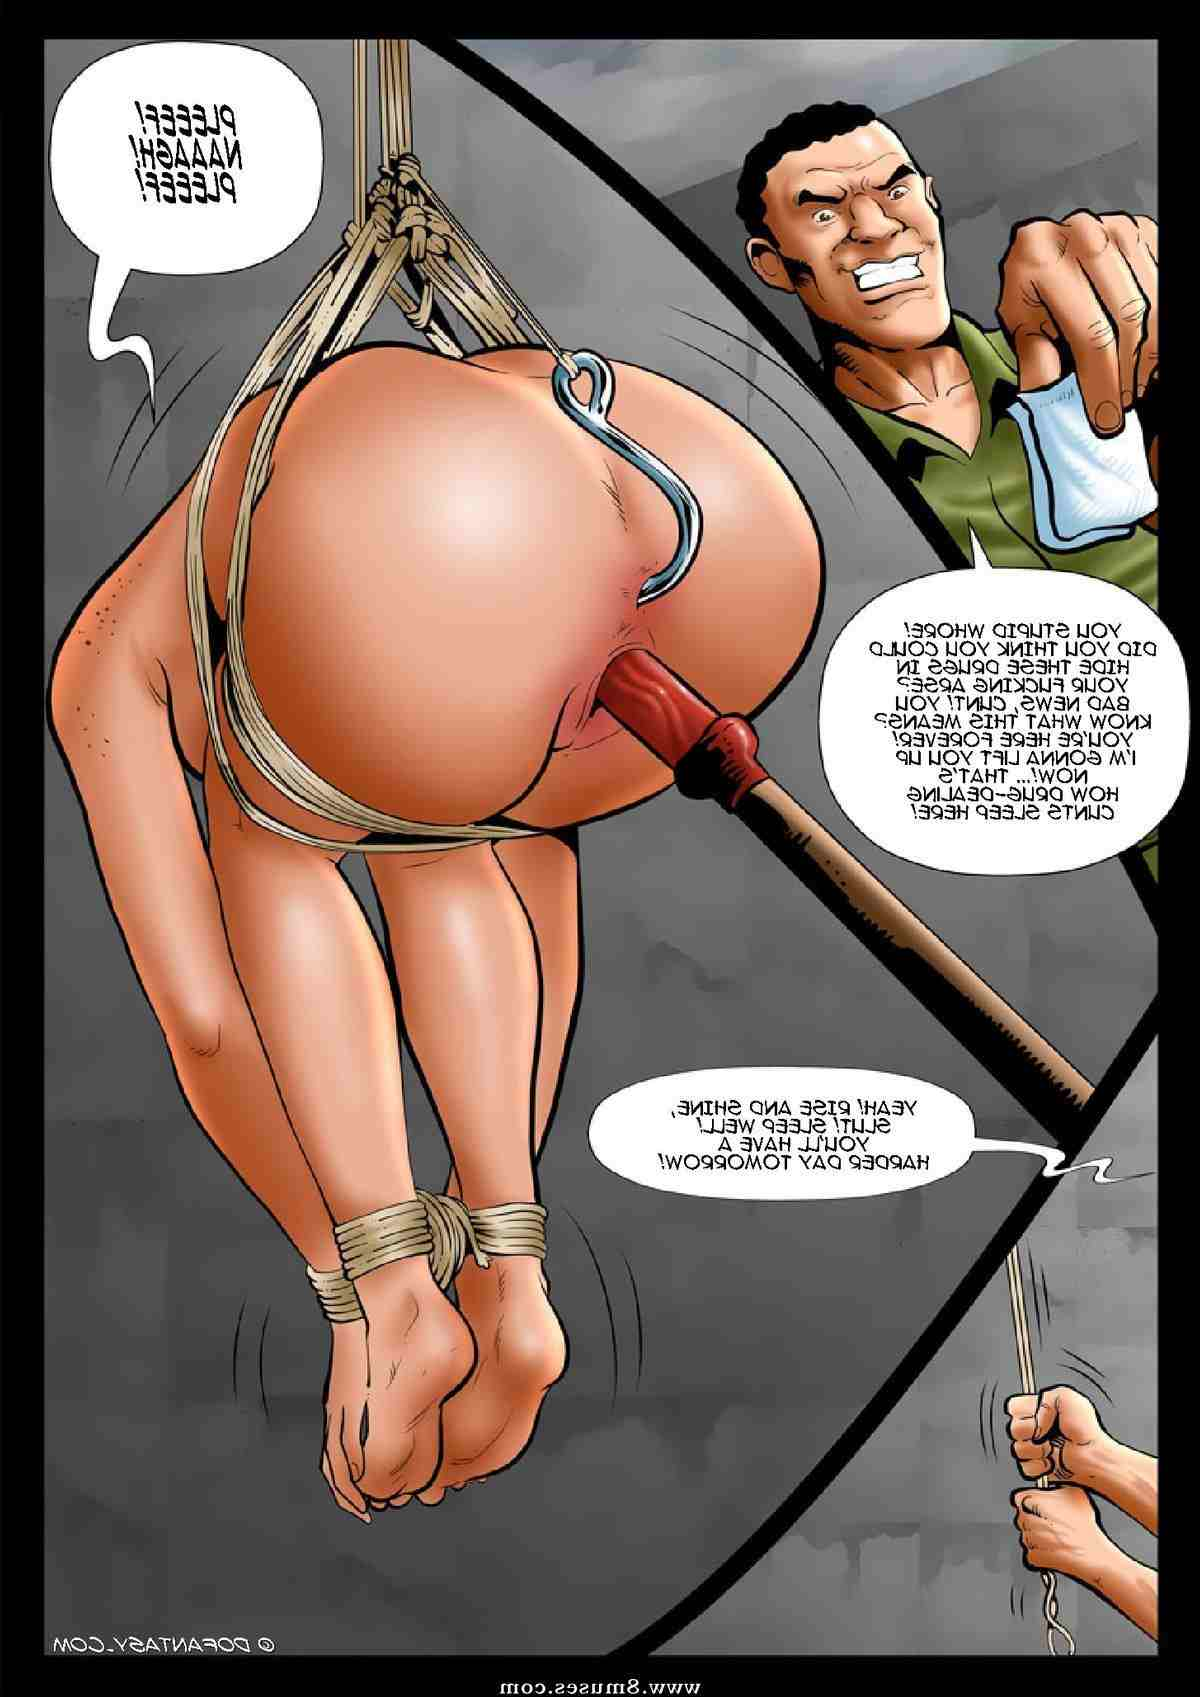 Fansadox-Comics/401-500/Fansadox-413-A-Bold-Officer-Cagri Fansadox_413_-_A_Bold_Officer_-_Cagri__8muses_-_Sex_and_Porn_Comics_18.jpg